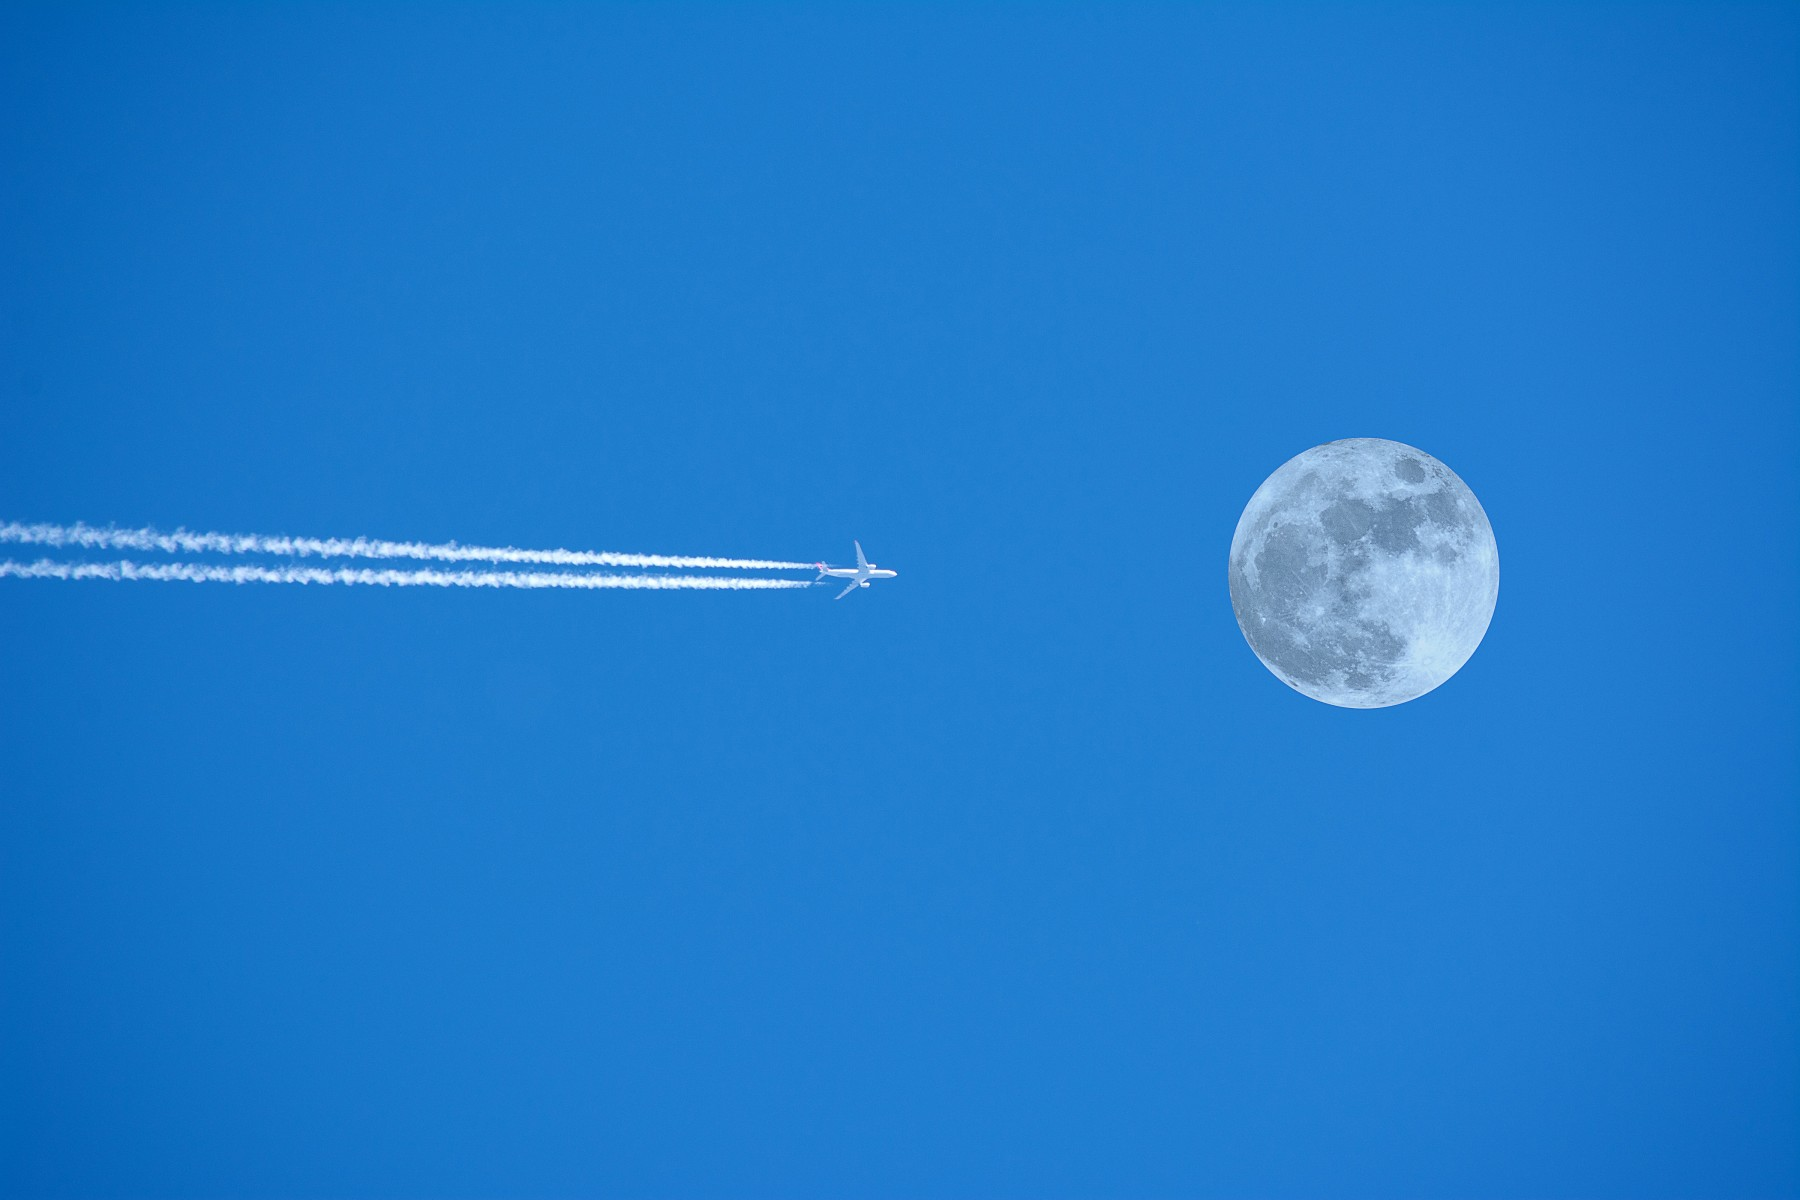 Booking.com Fly me to the moon